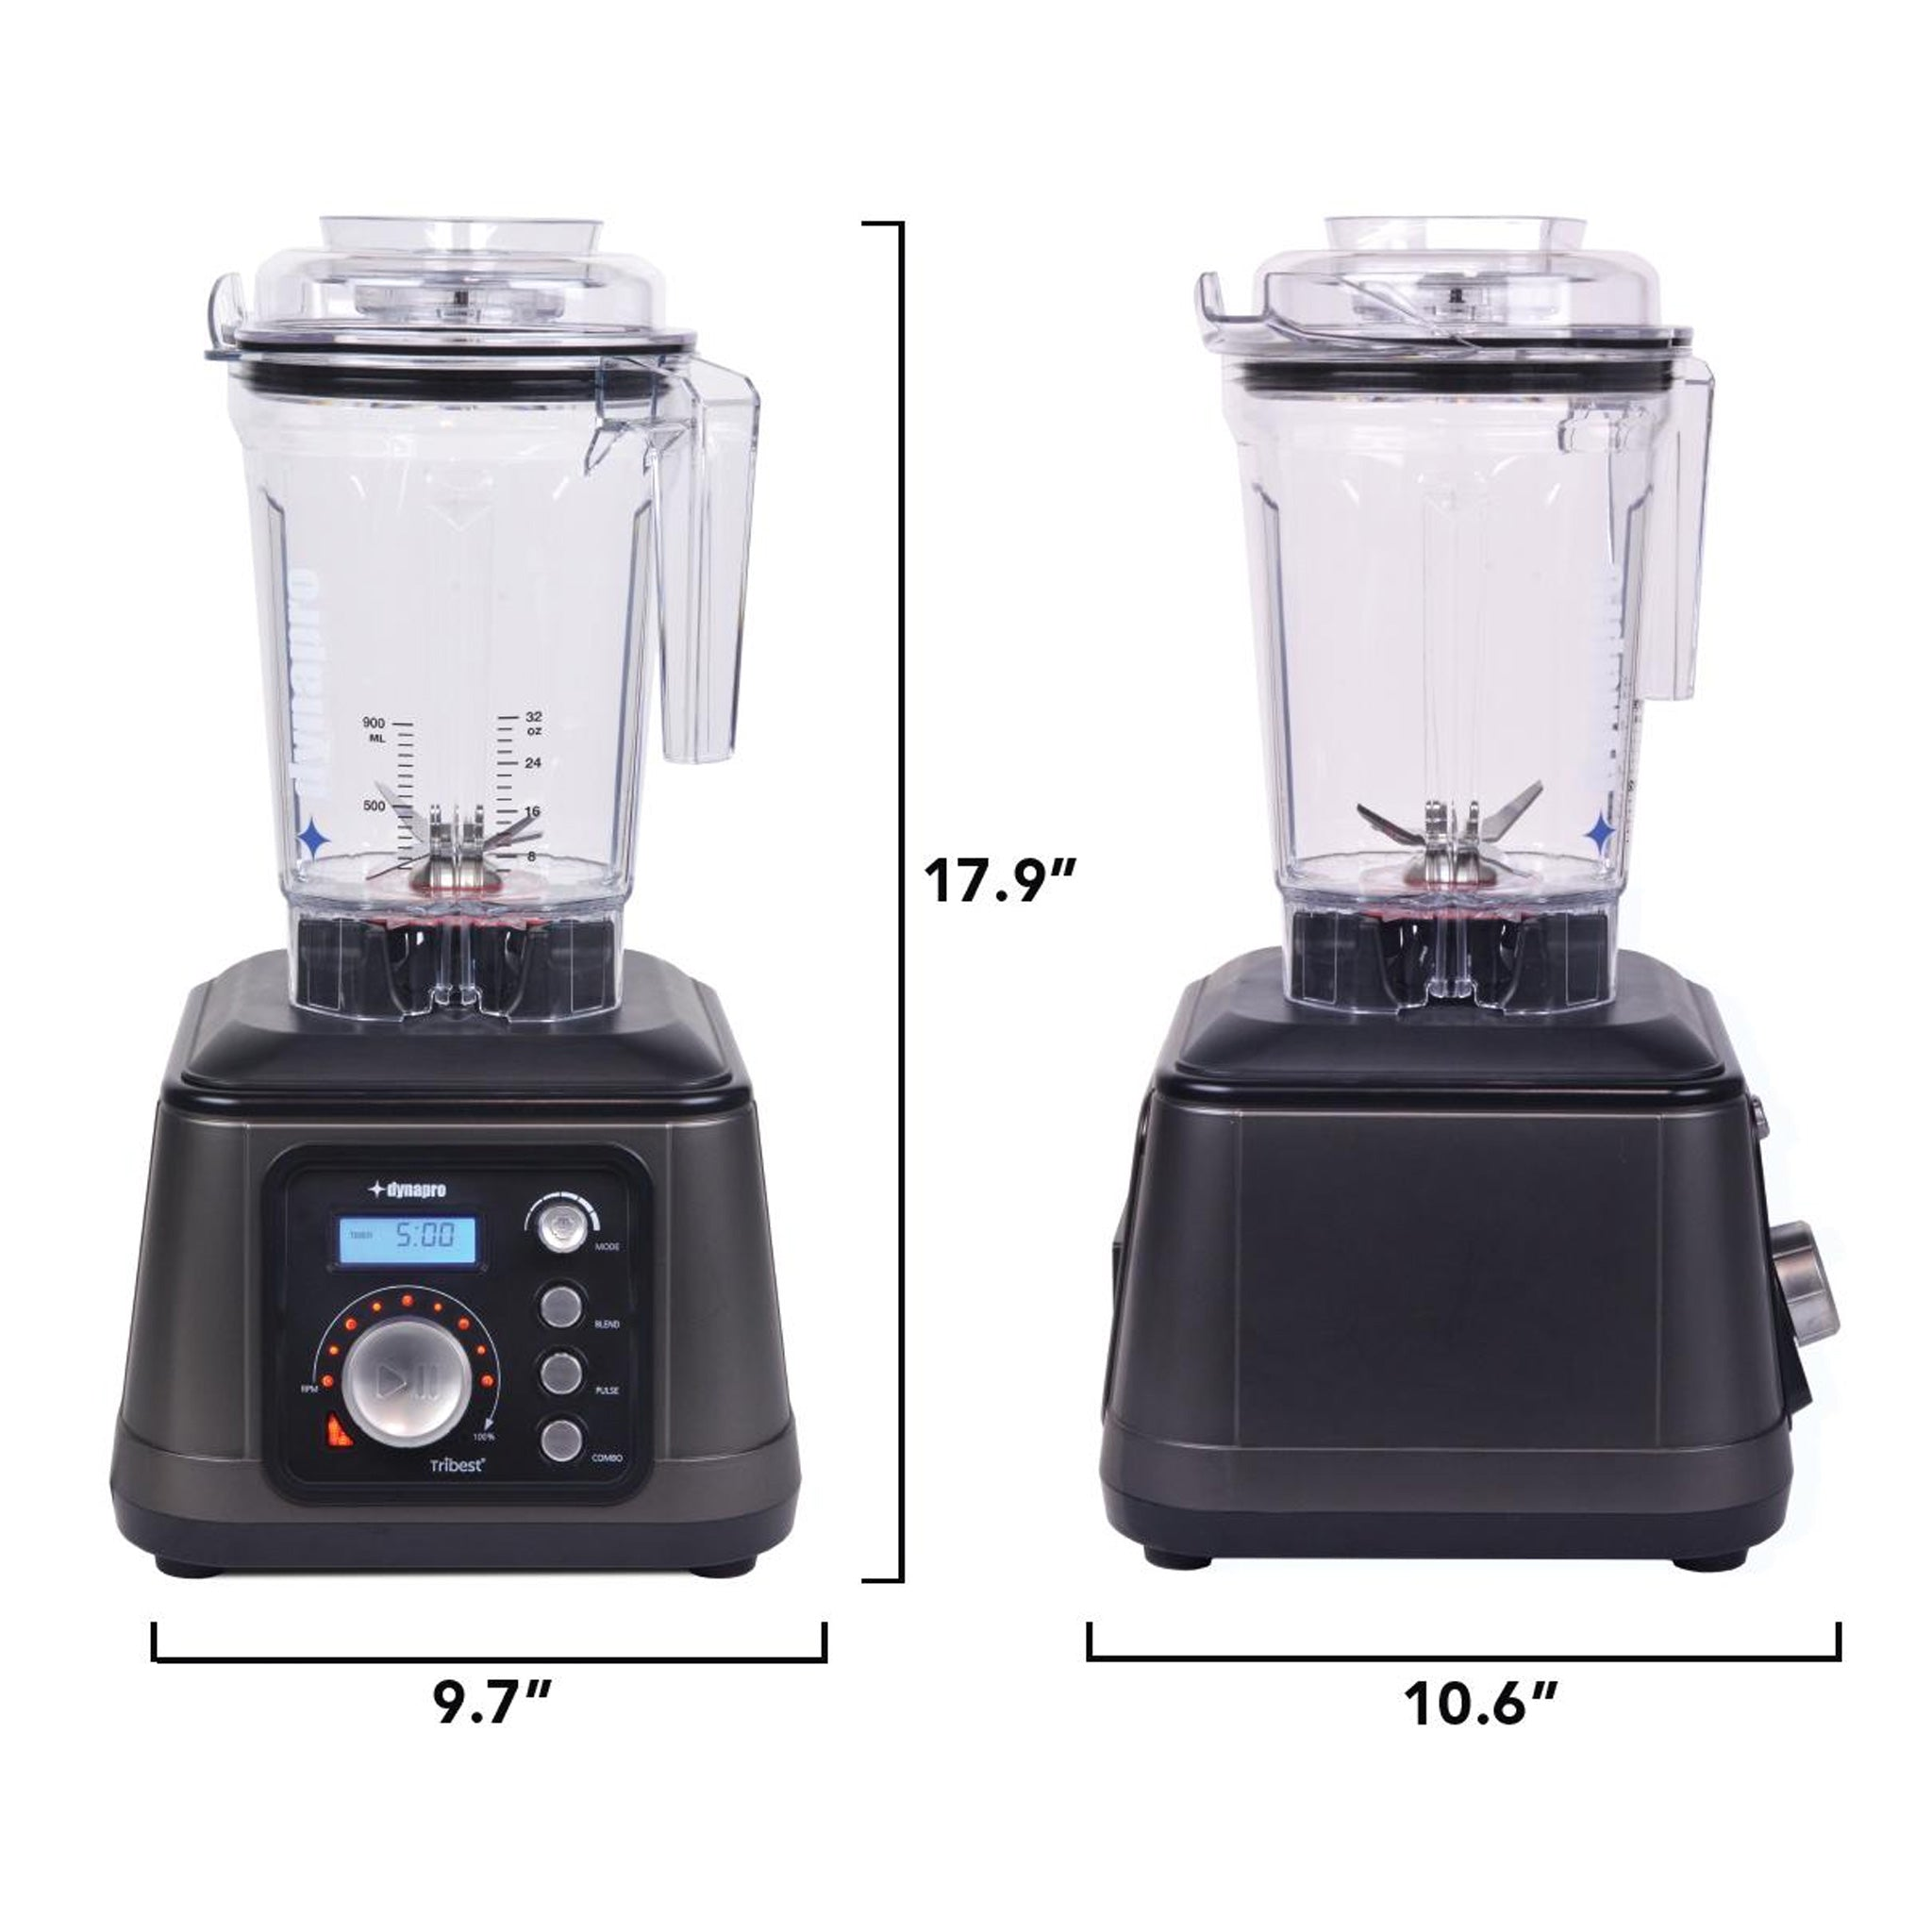 Dynapro Commercial Vacuum Blender DPS-1050A-B - Measurements 9.7